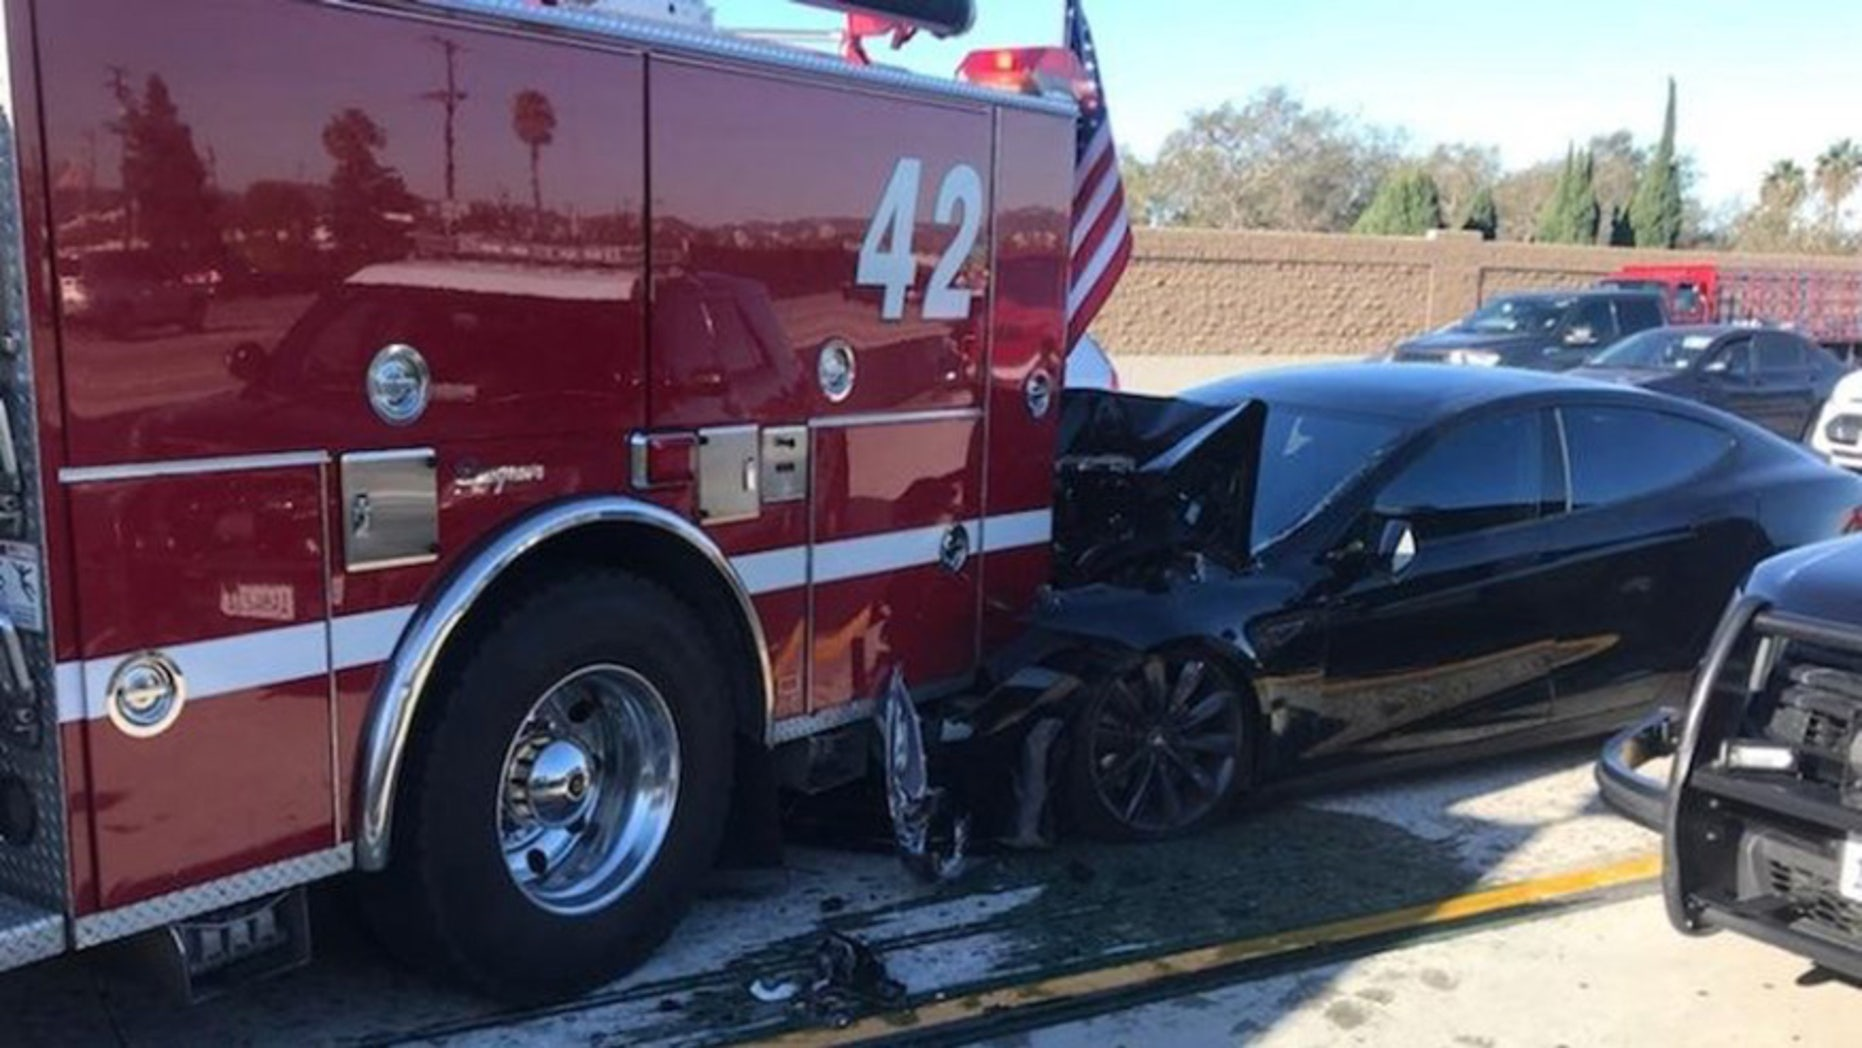 A Tesla rear-ended a fire truck parked to respond to an accident on I-405in Culver City, Calif. on Jan. 22, 2018, according to the Culver City FireDepartment and California Highway Patrol. (Culver City Firefighters Local1927)